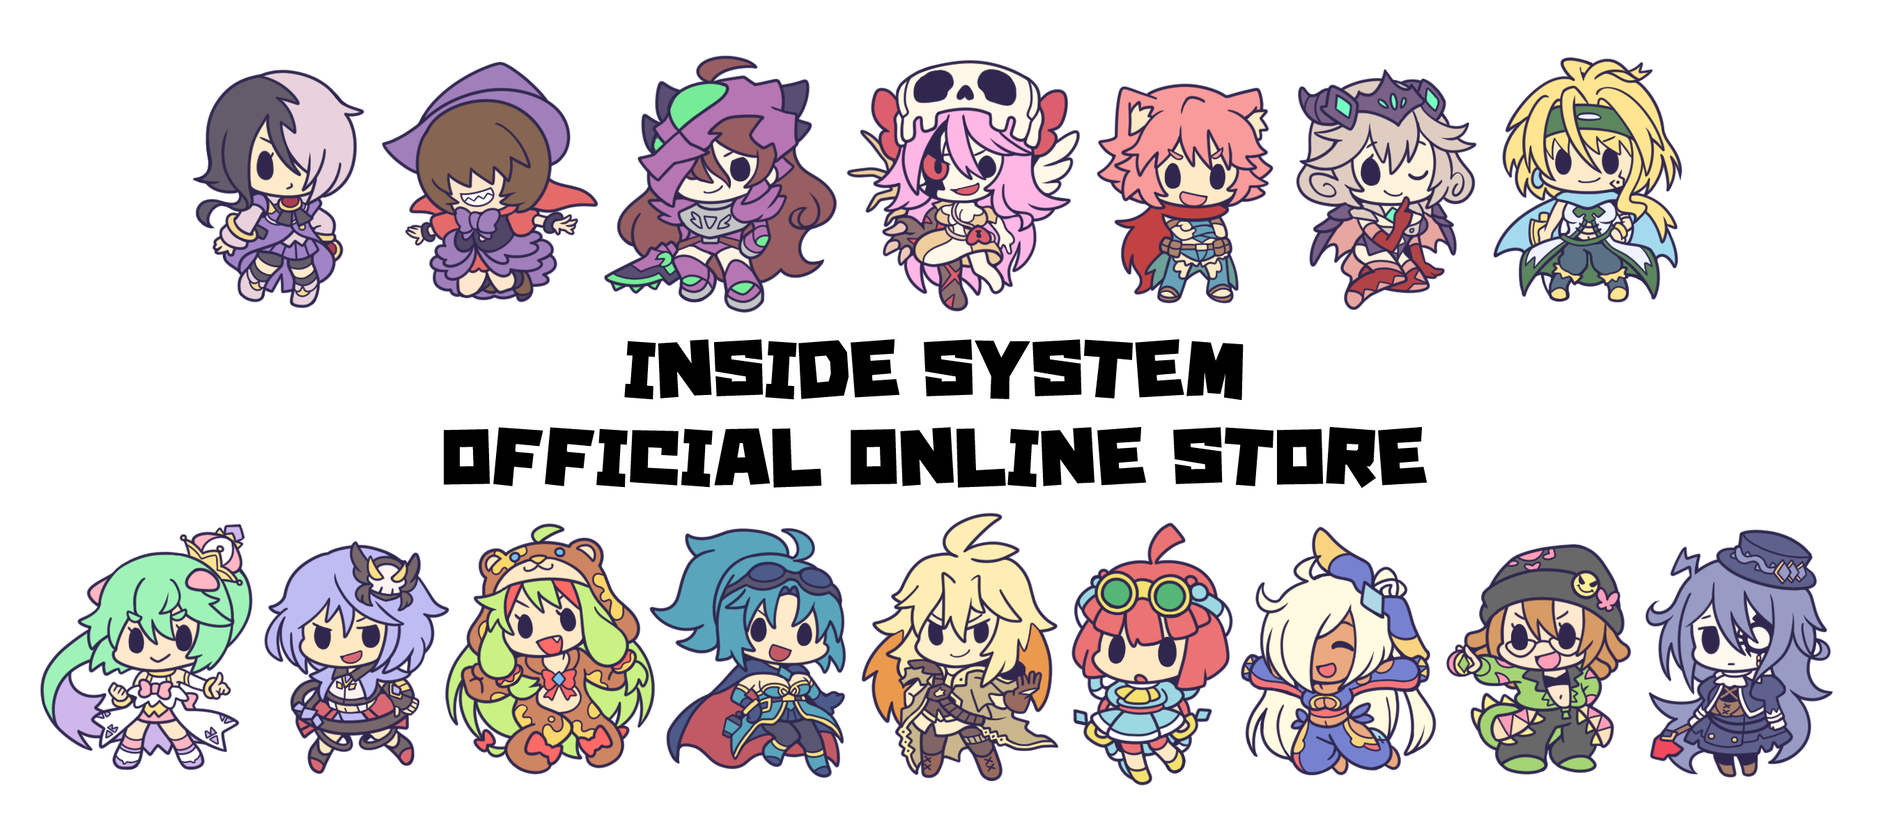 INSIDE SYSTEM OFFICIAL ONLINE STORE